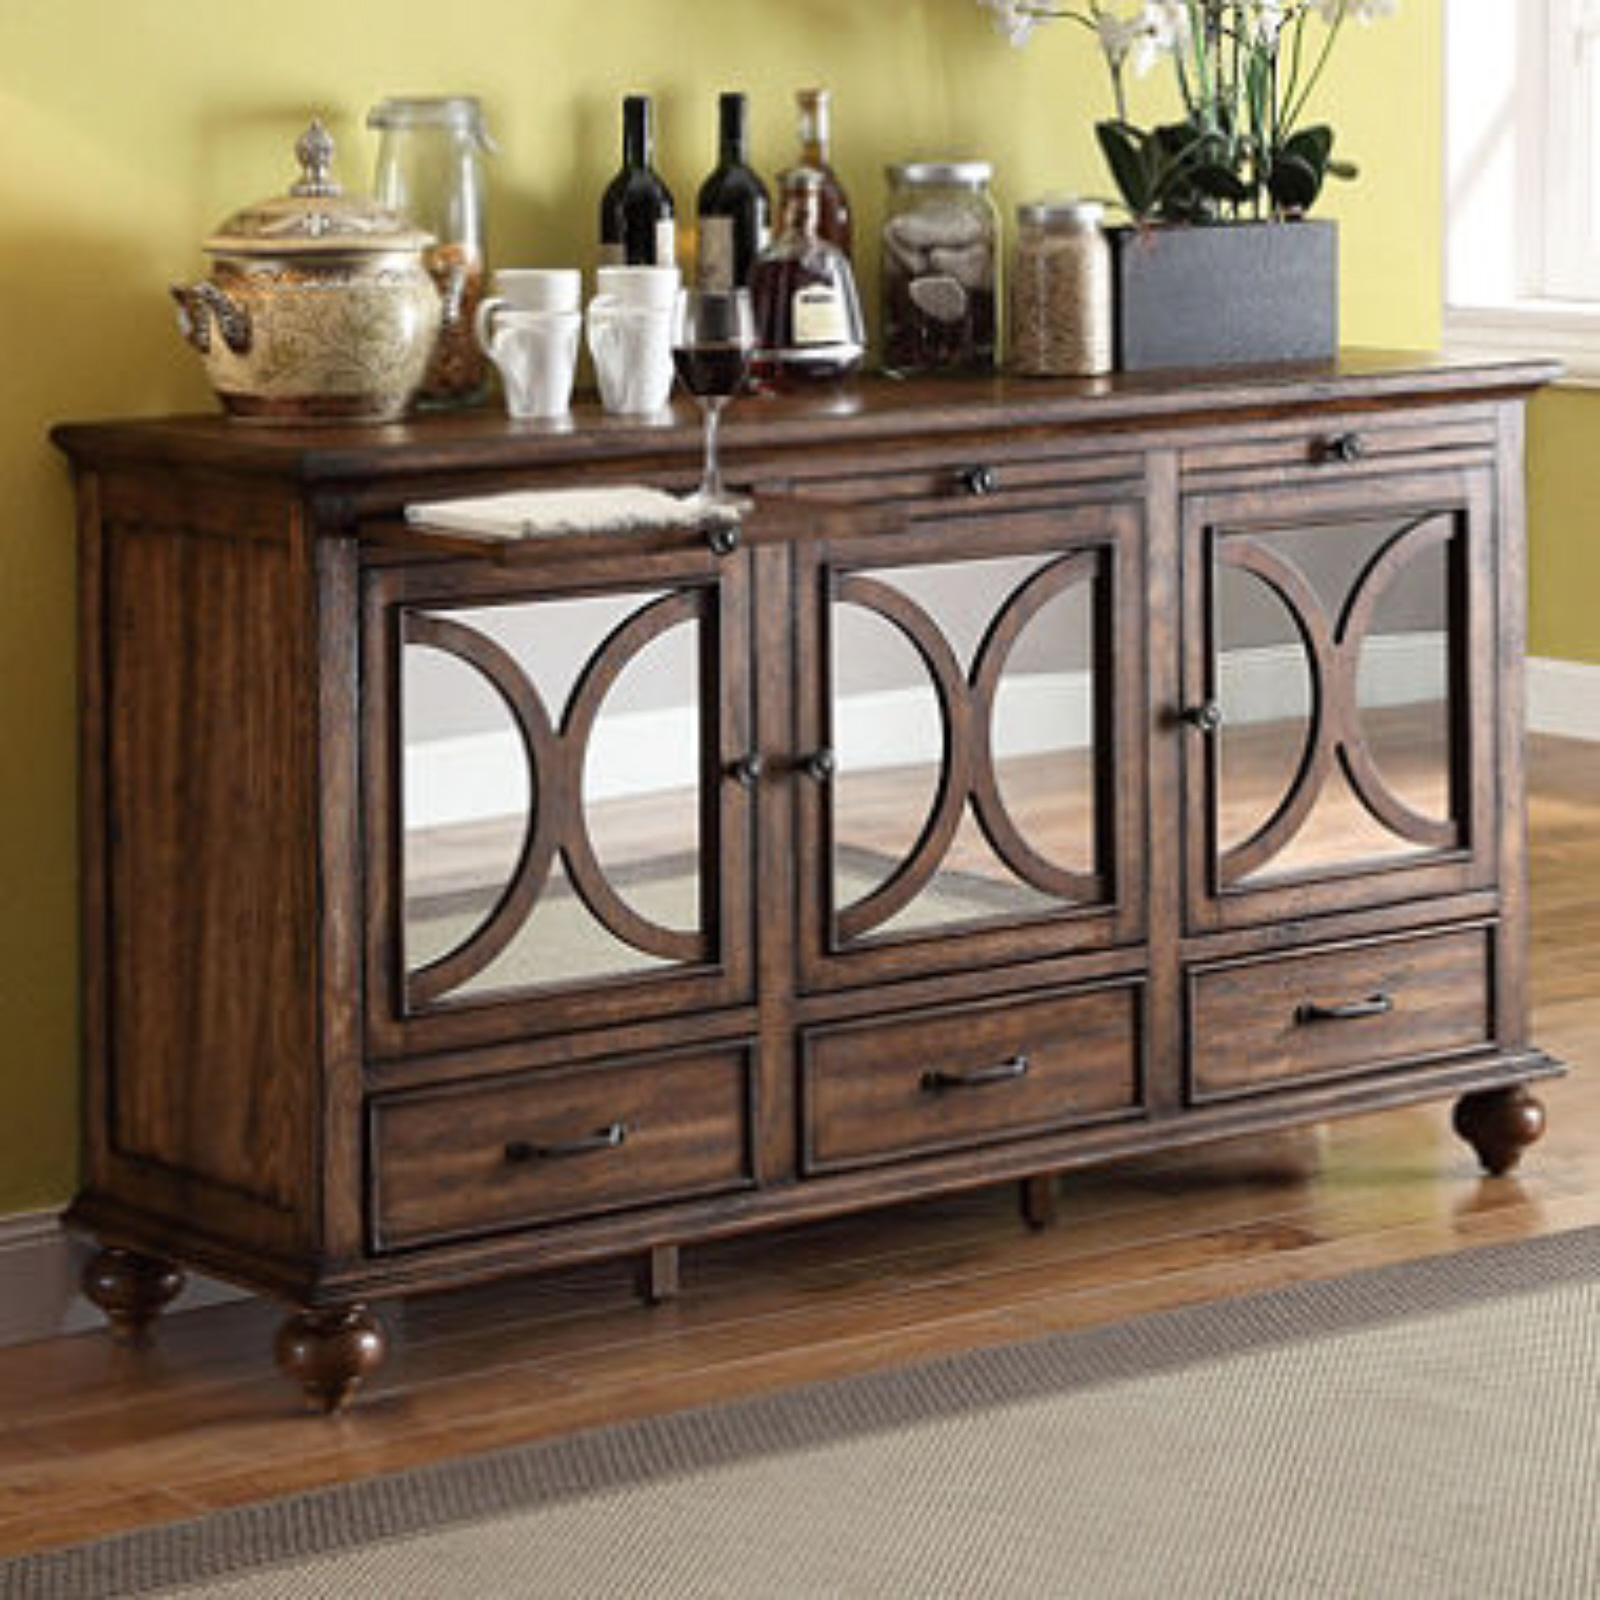 isabelle mirrored storage console living room furniture organizing